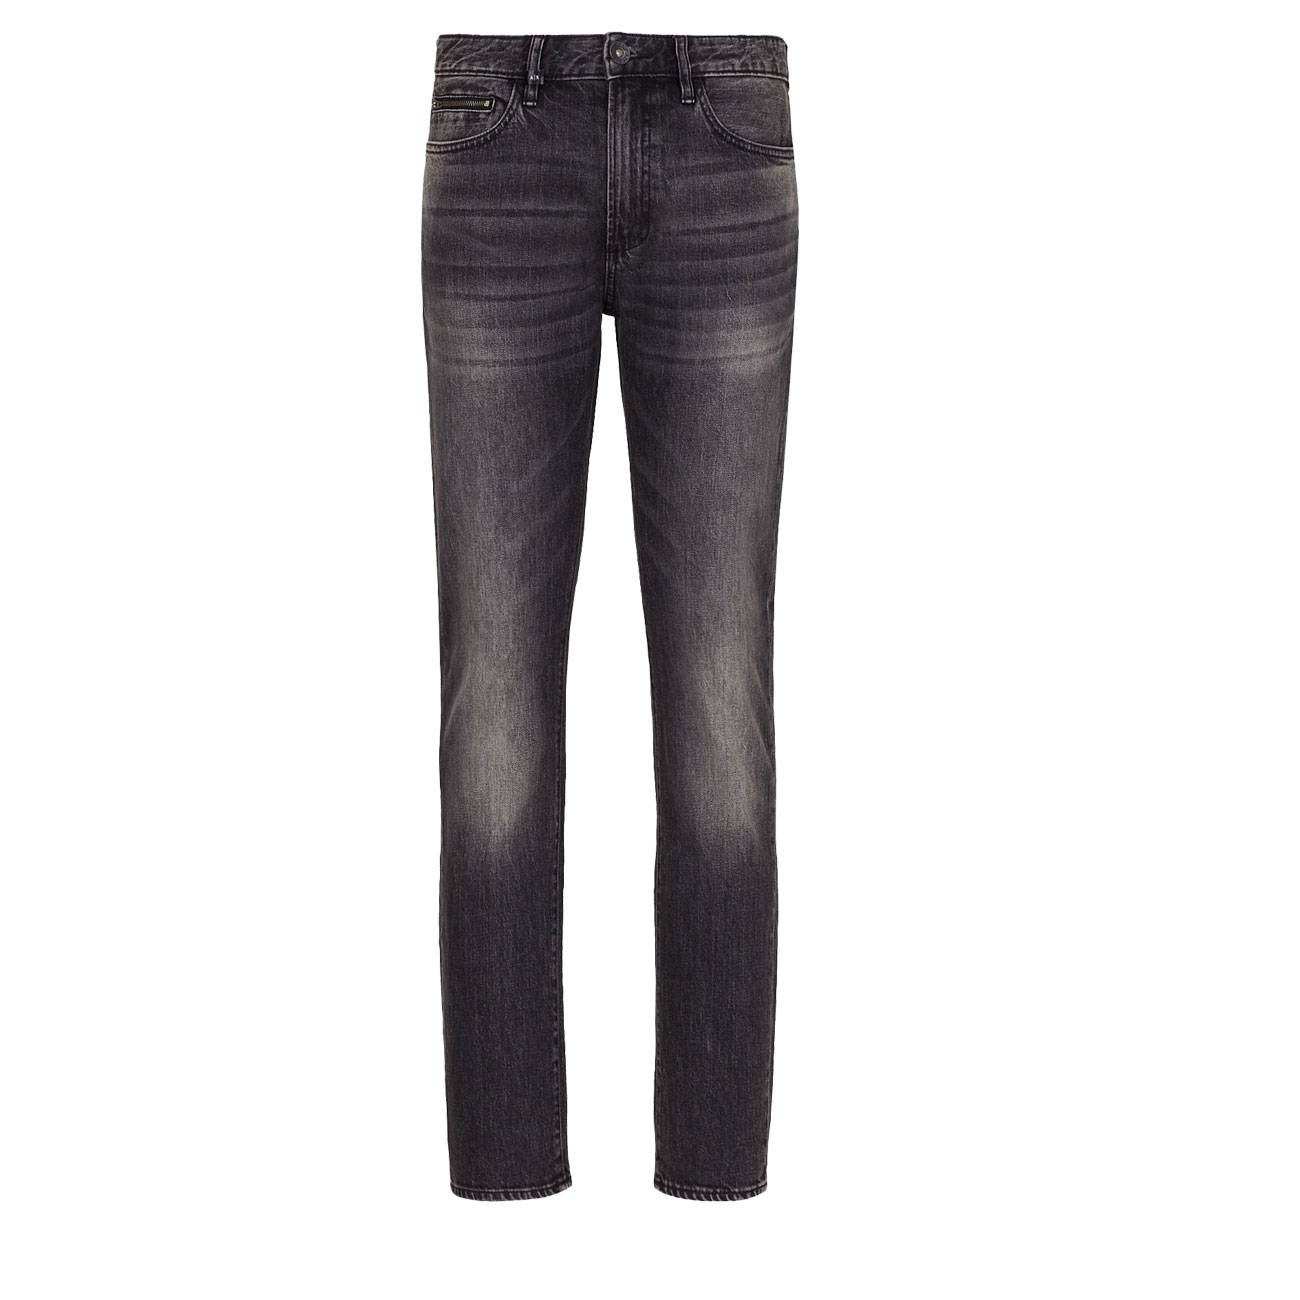 J22 Tapered Jeans 32